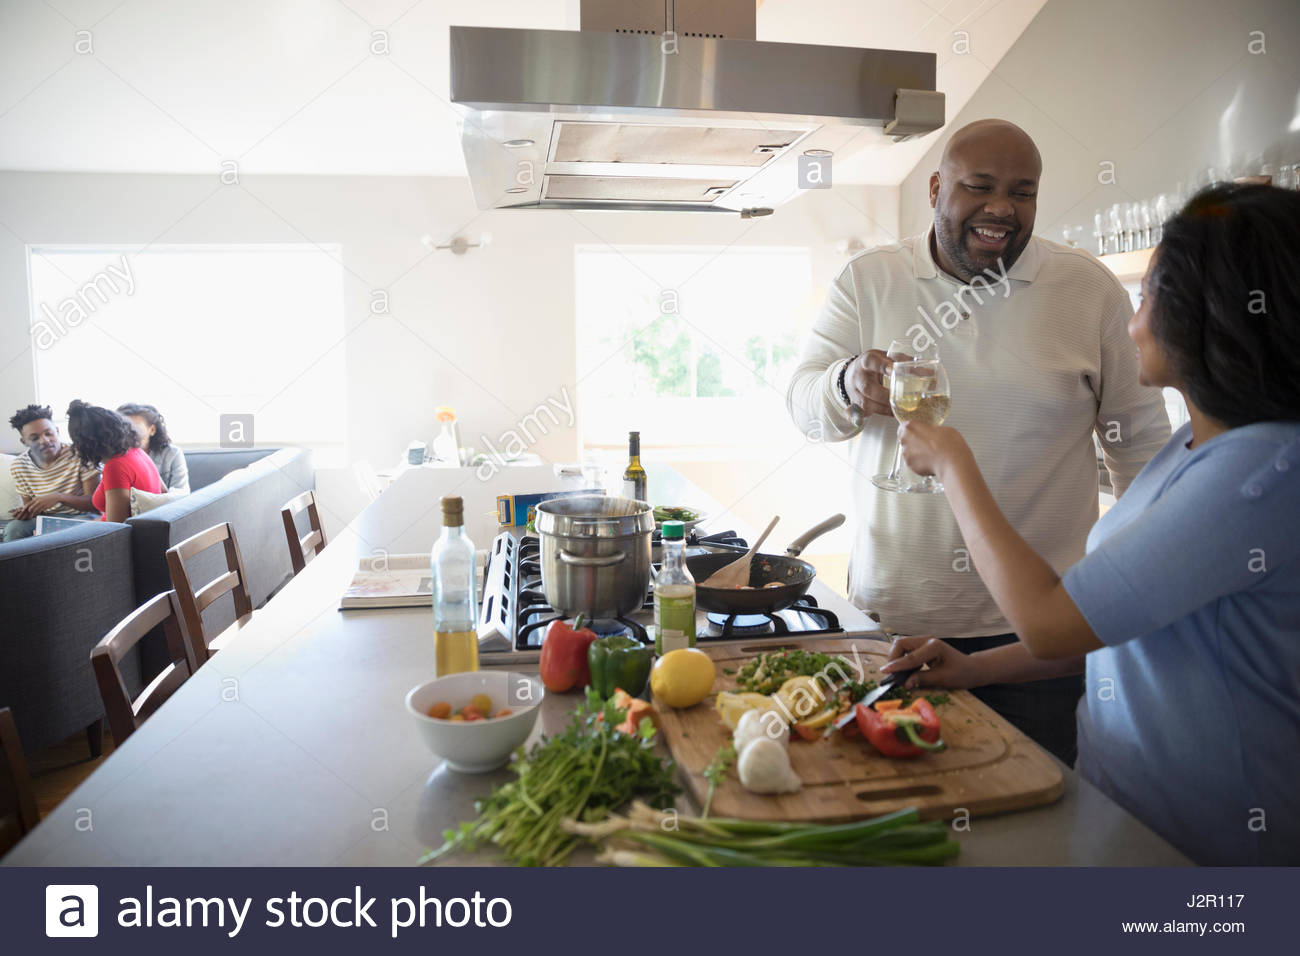 African American couple cooking and drinking white wine in kitchen - Stock Image